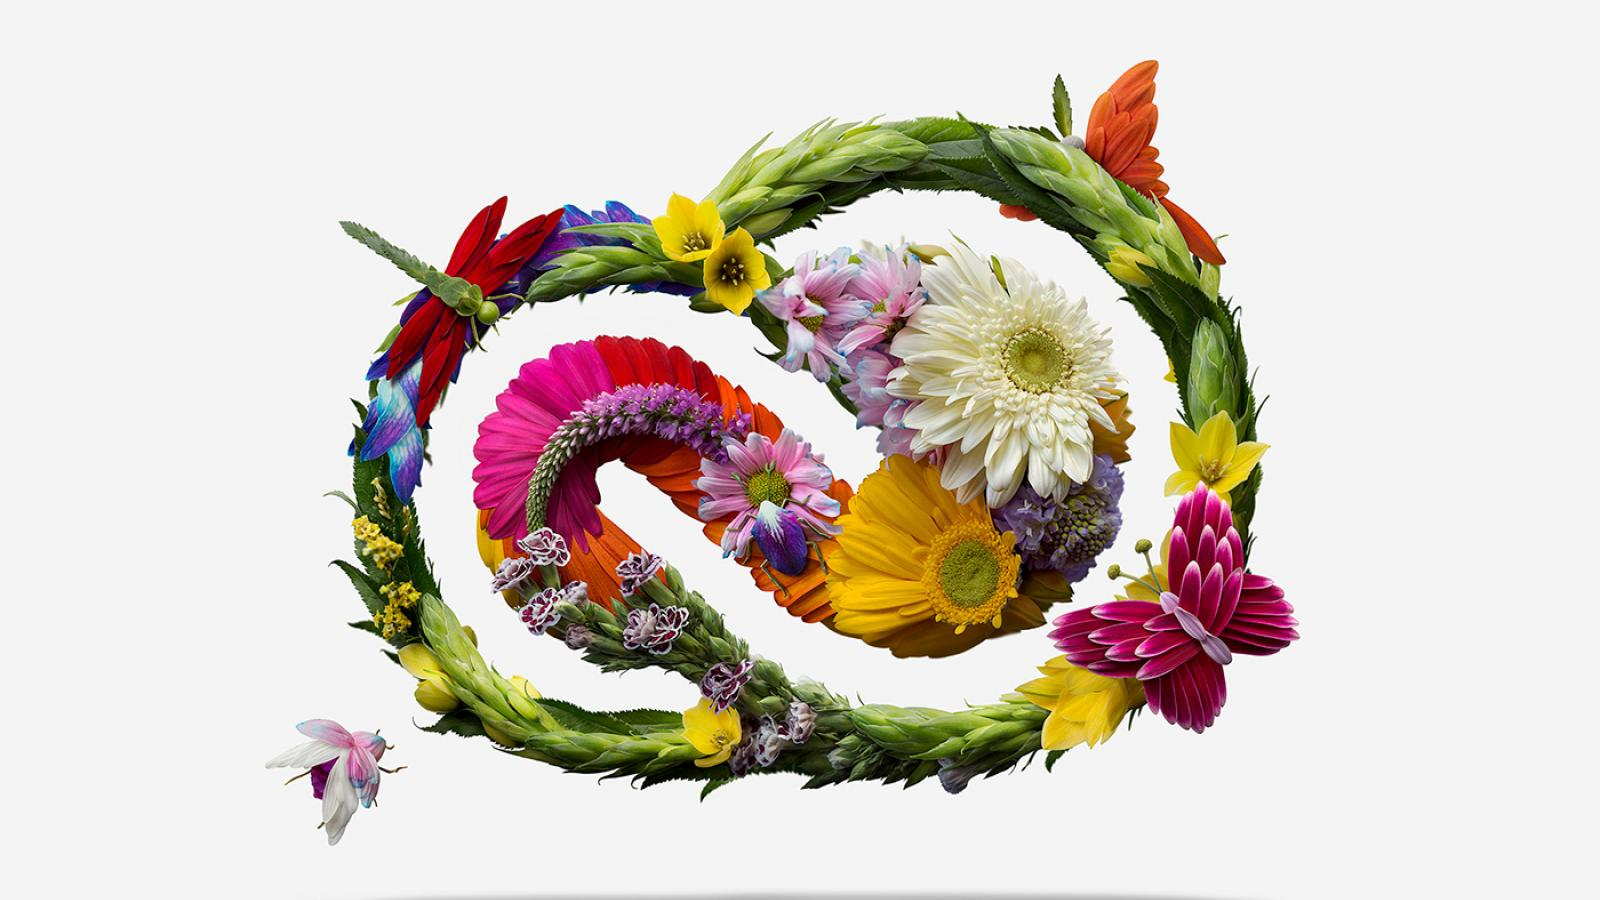 Artist Raku Inoue recreates the Adobe CC logo with beautiful flowers